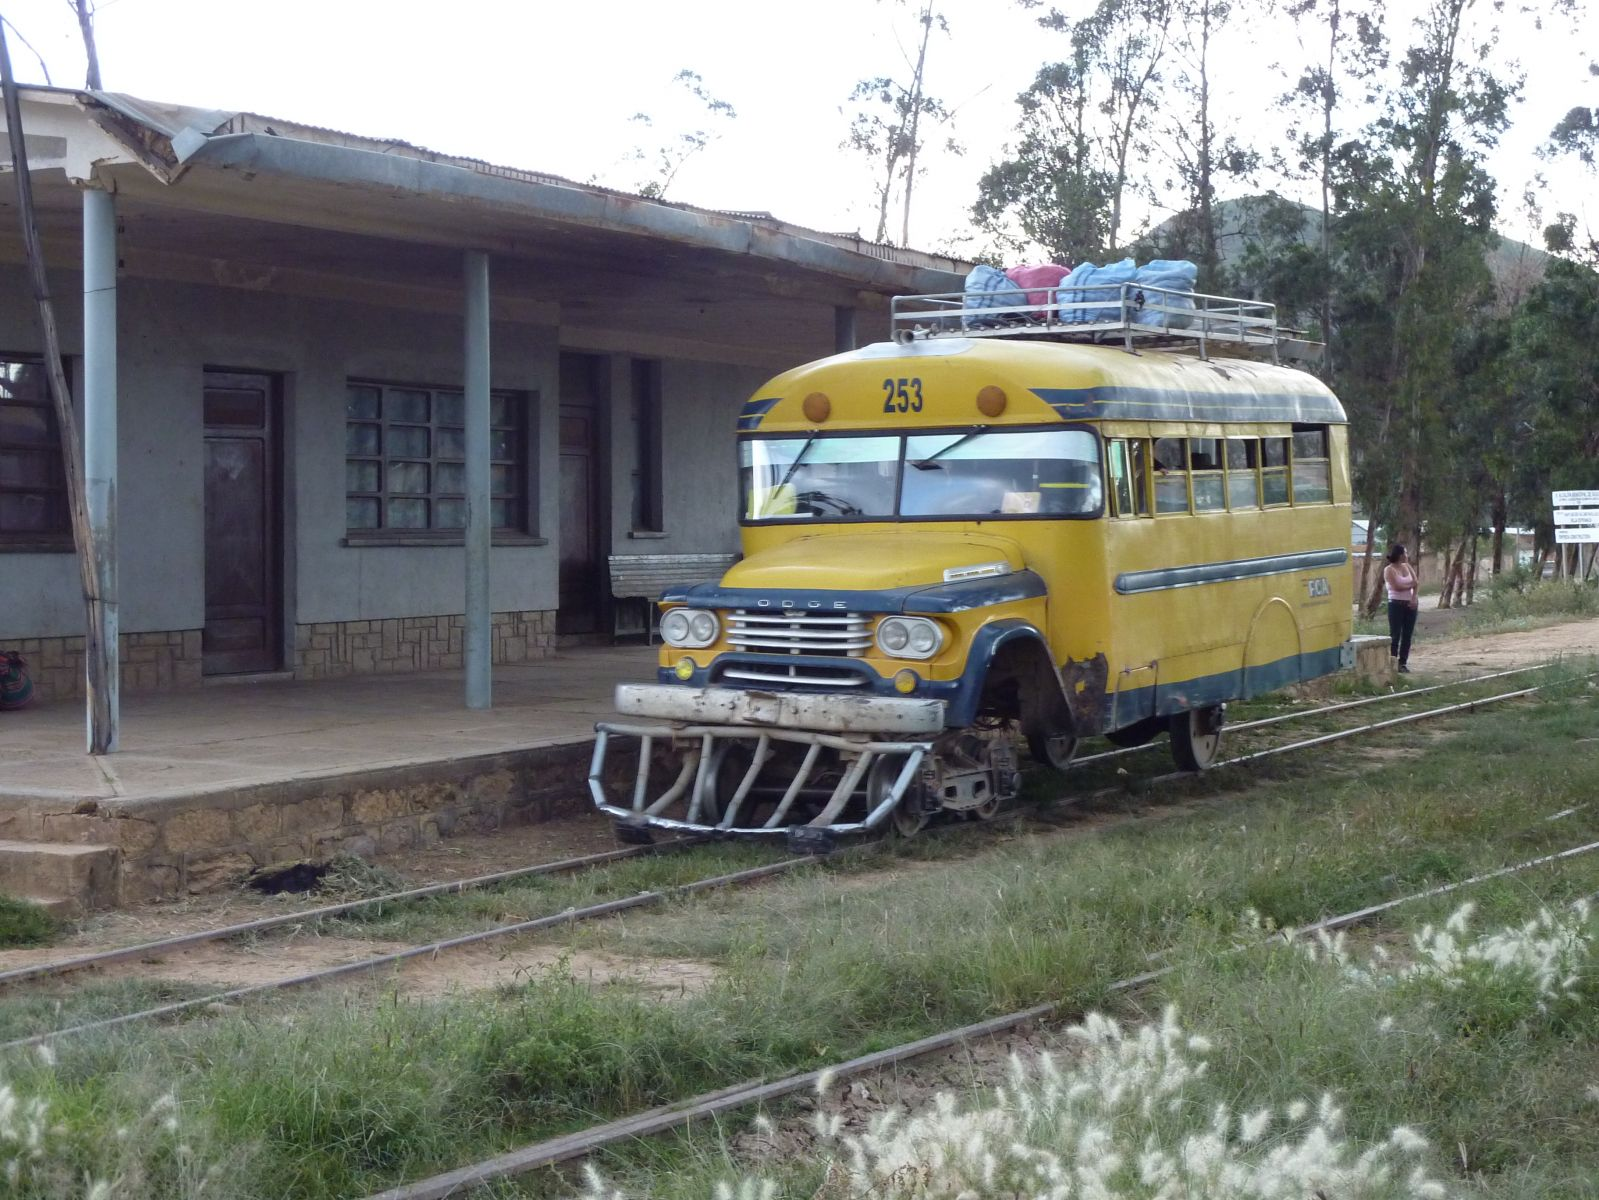 Railbus and station